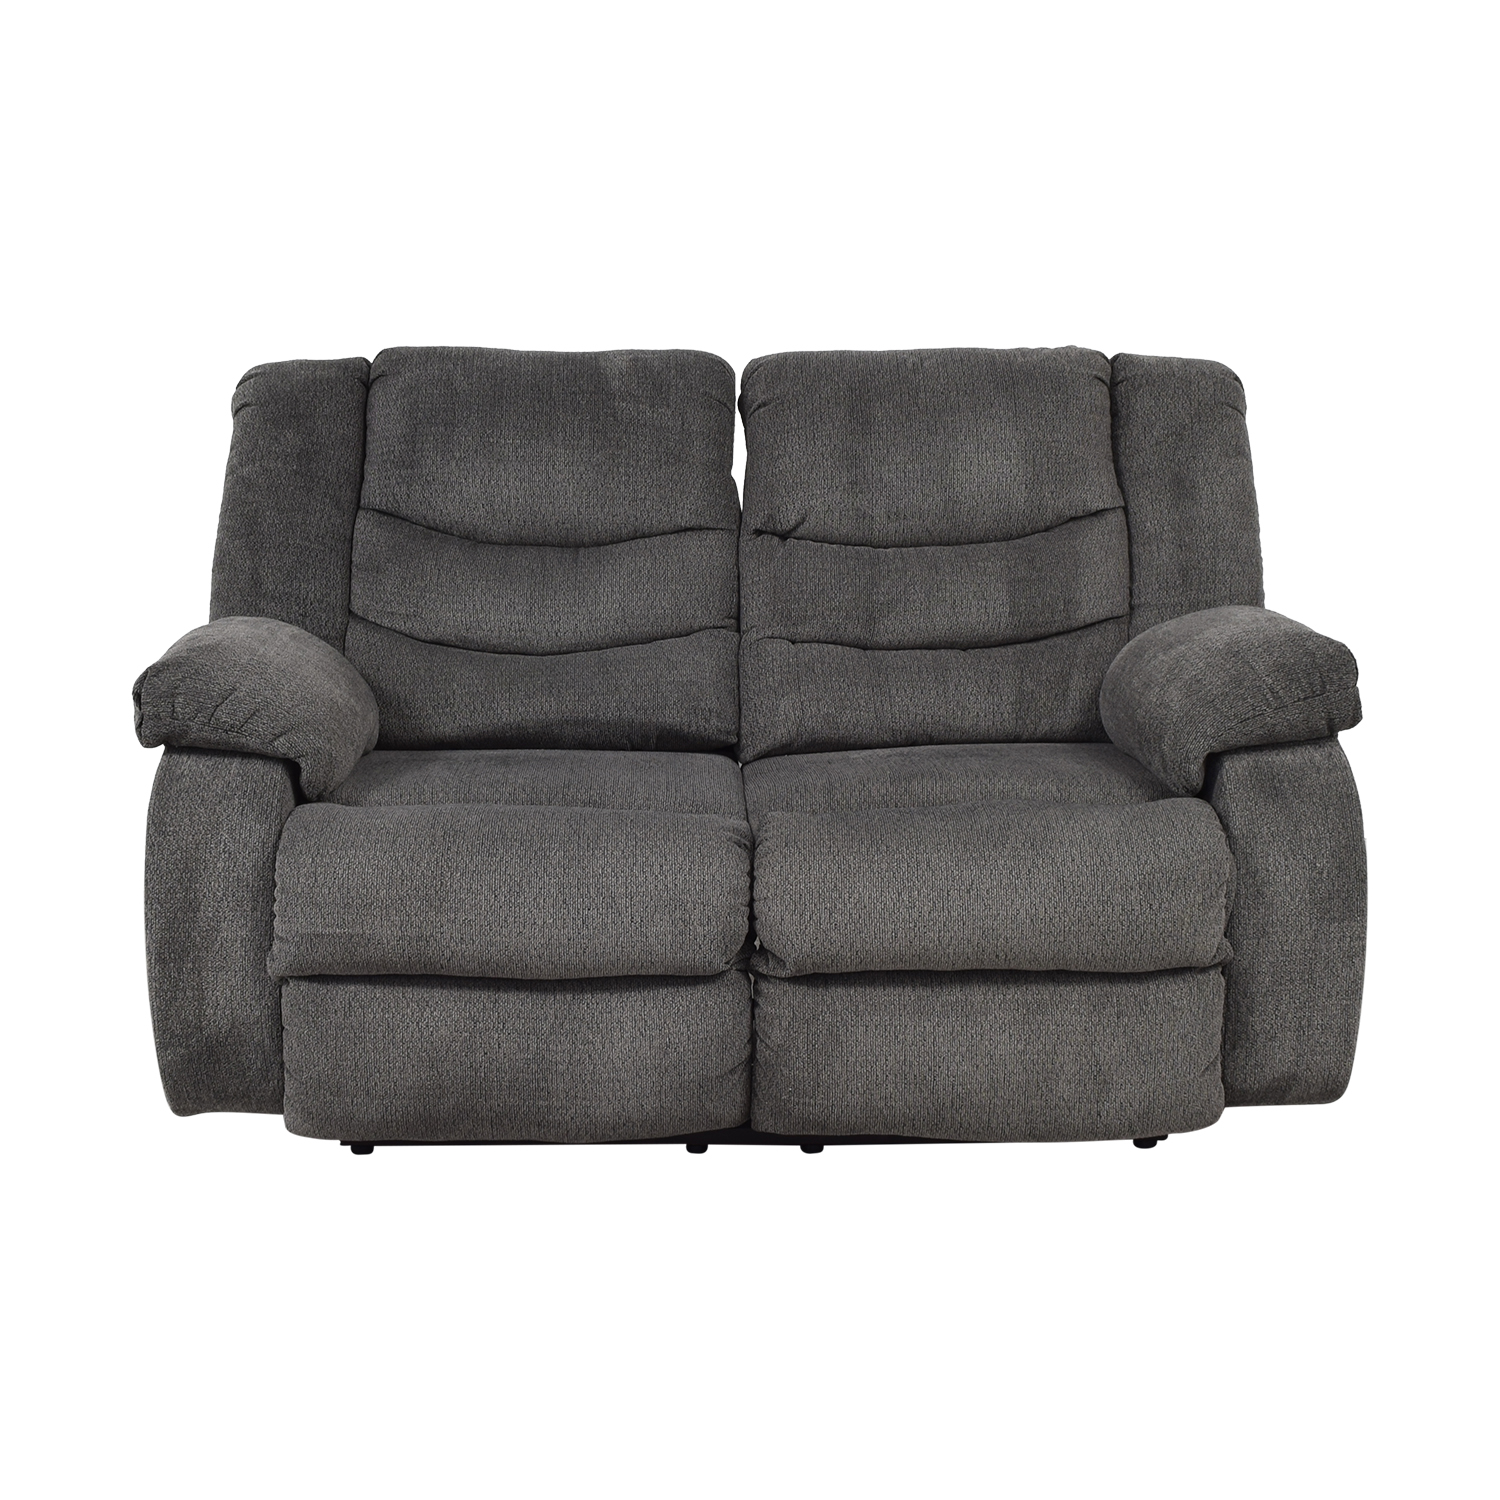 Ashley Furniture Ashley Furniture Gray Reclining Loveseat for sale